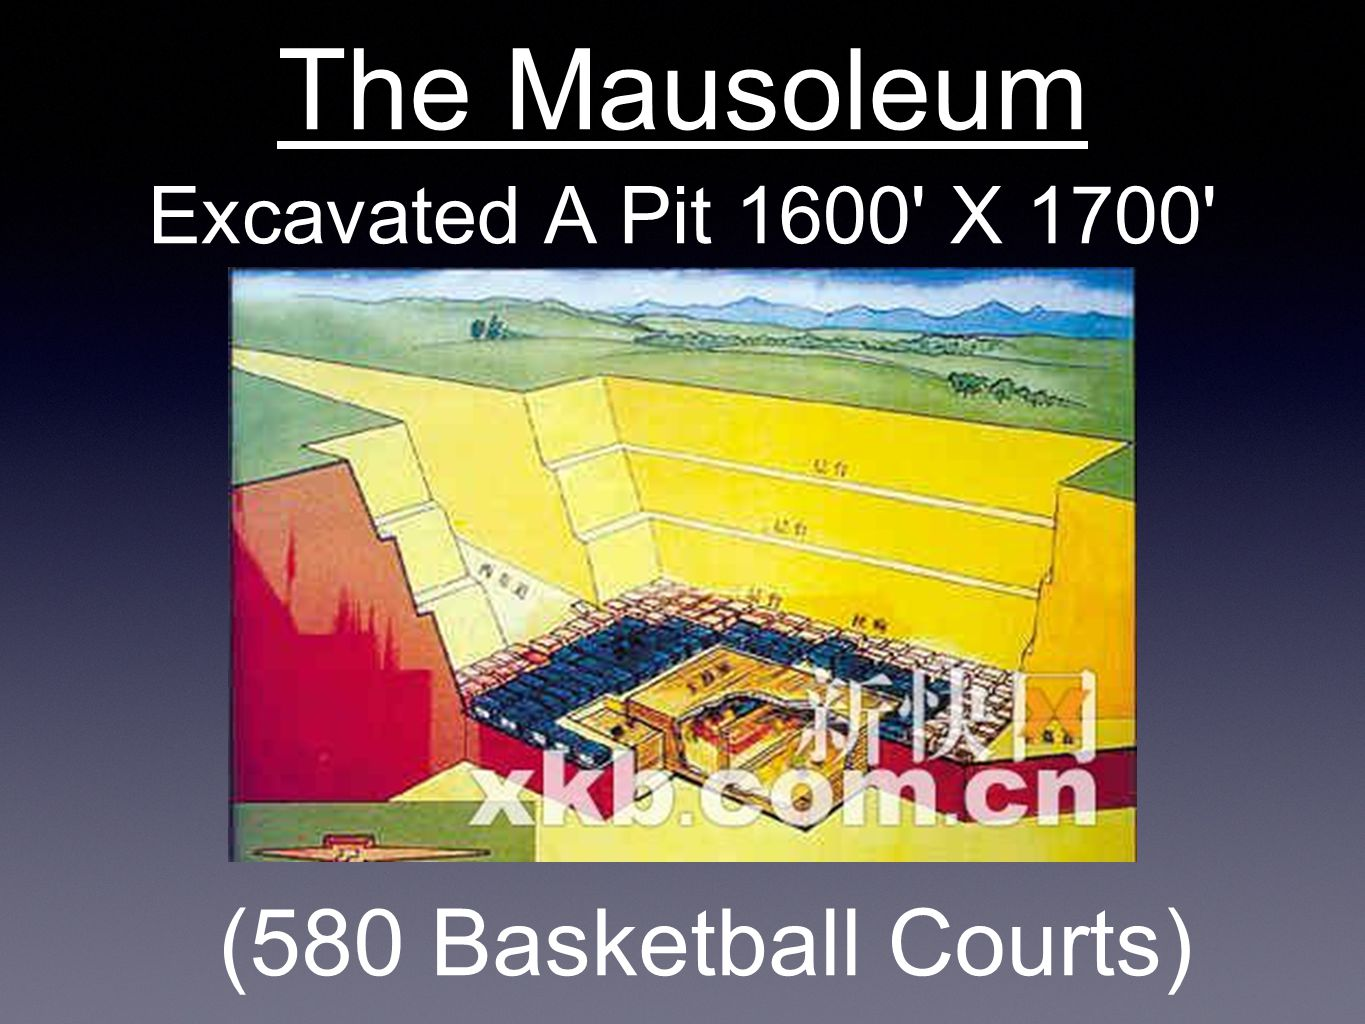 Excavated A Pit 1600 X 1700 The Mausoleum (580 Basketball Courts)